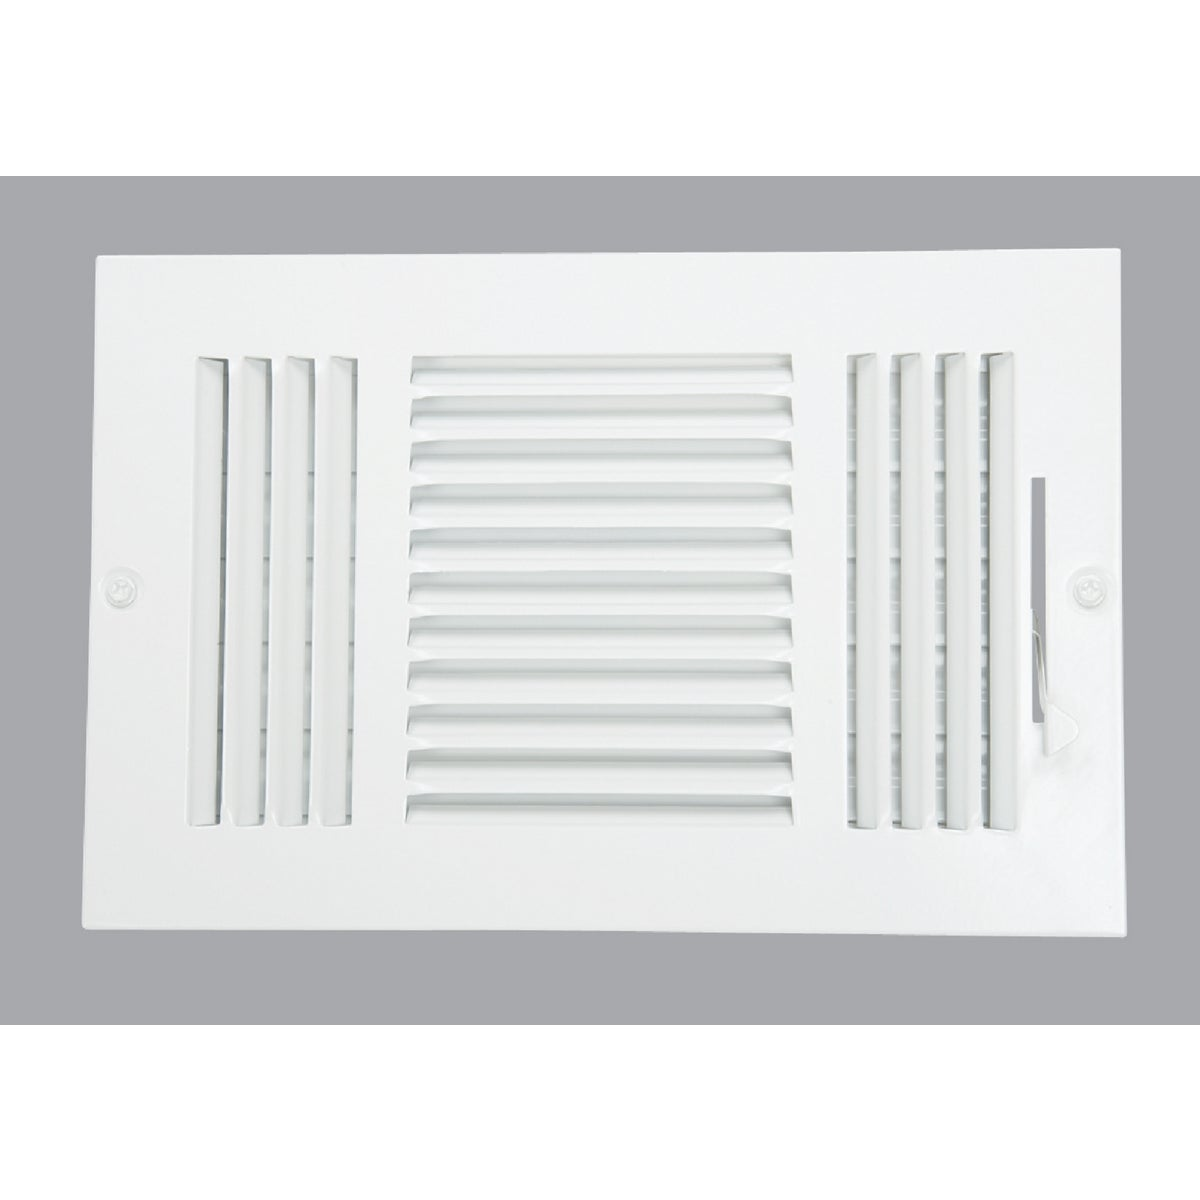 6X10 WHT 3-WAY REGISTER - 3SW1006WH-B by Do it Best